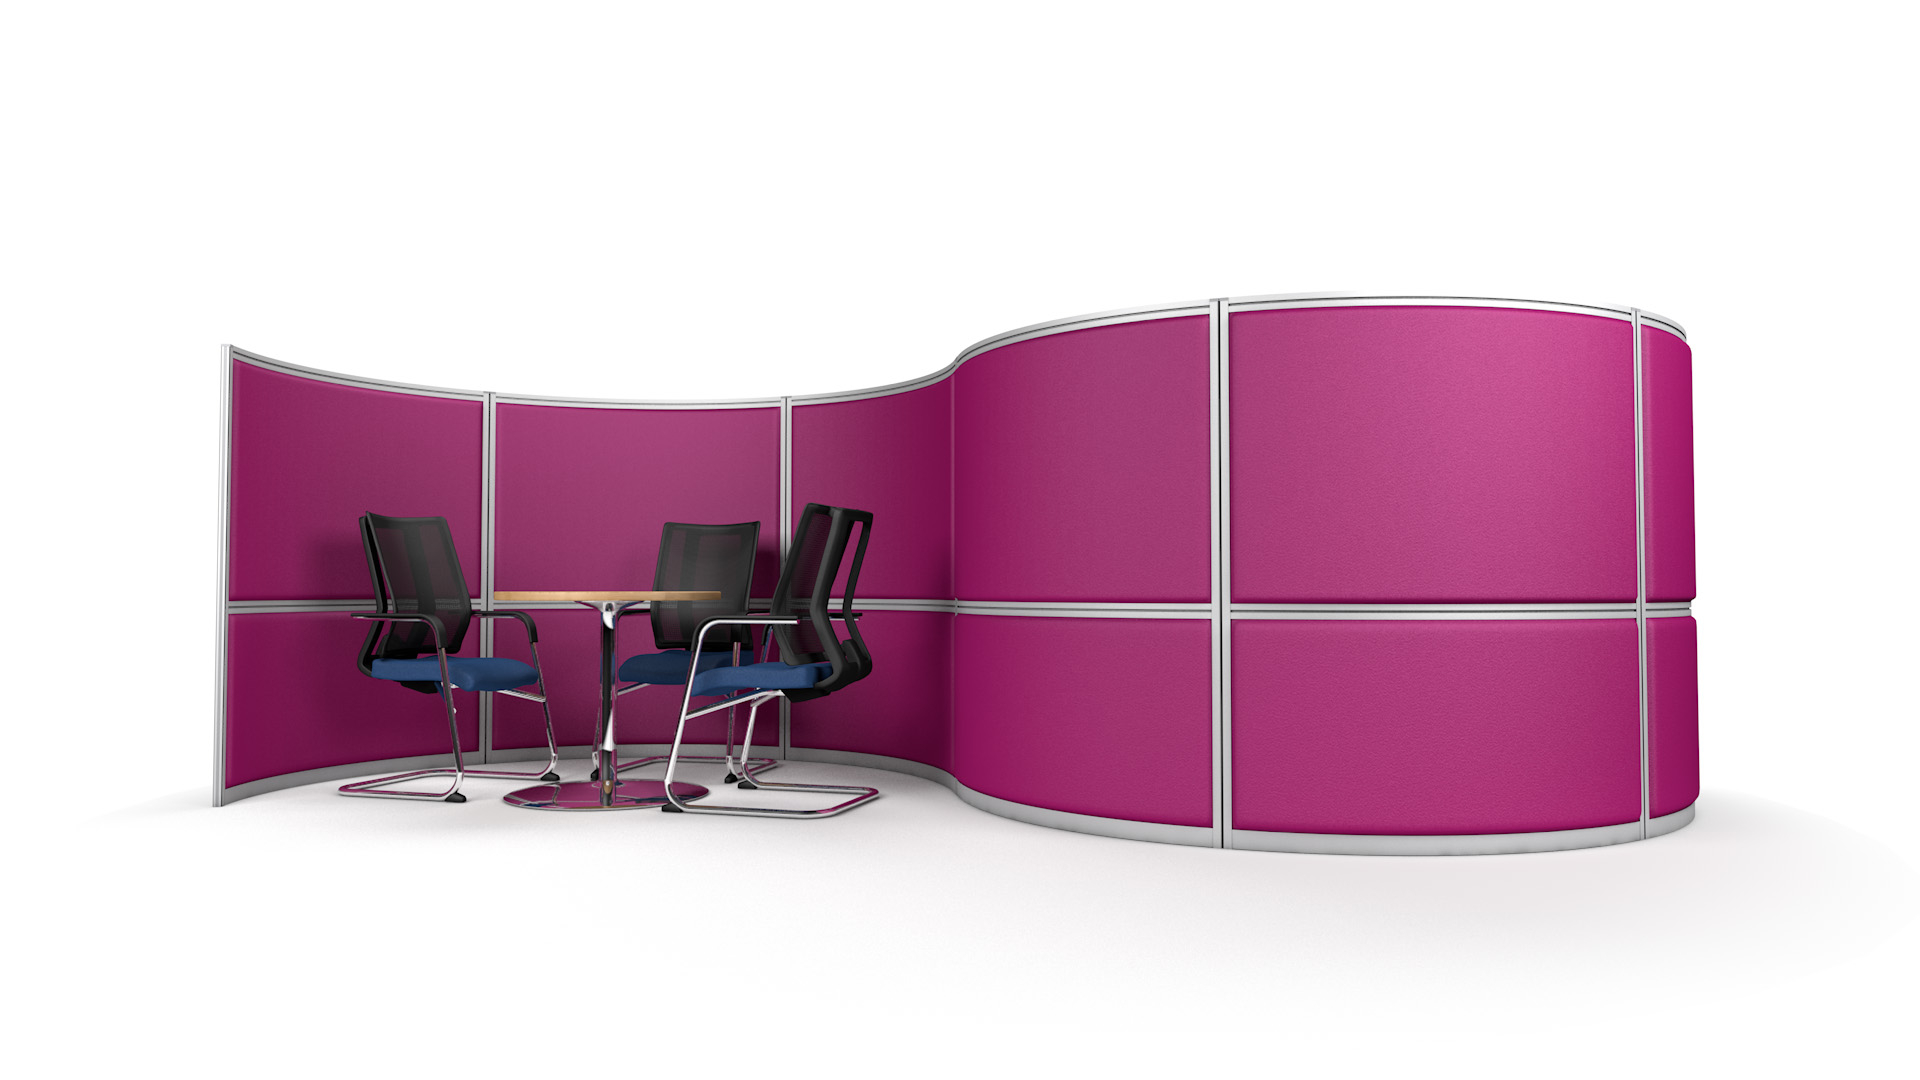 S-Shaped Acoustic Office Screen Wall With Two Meeting Booths